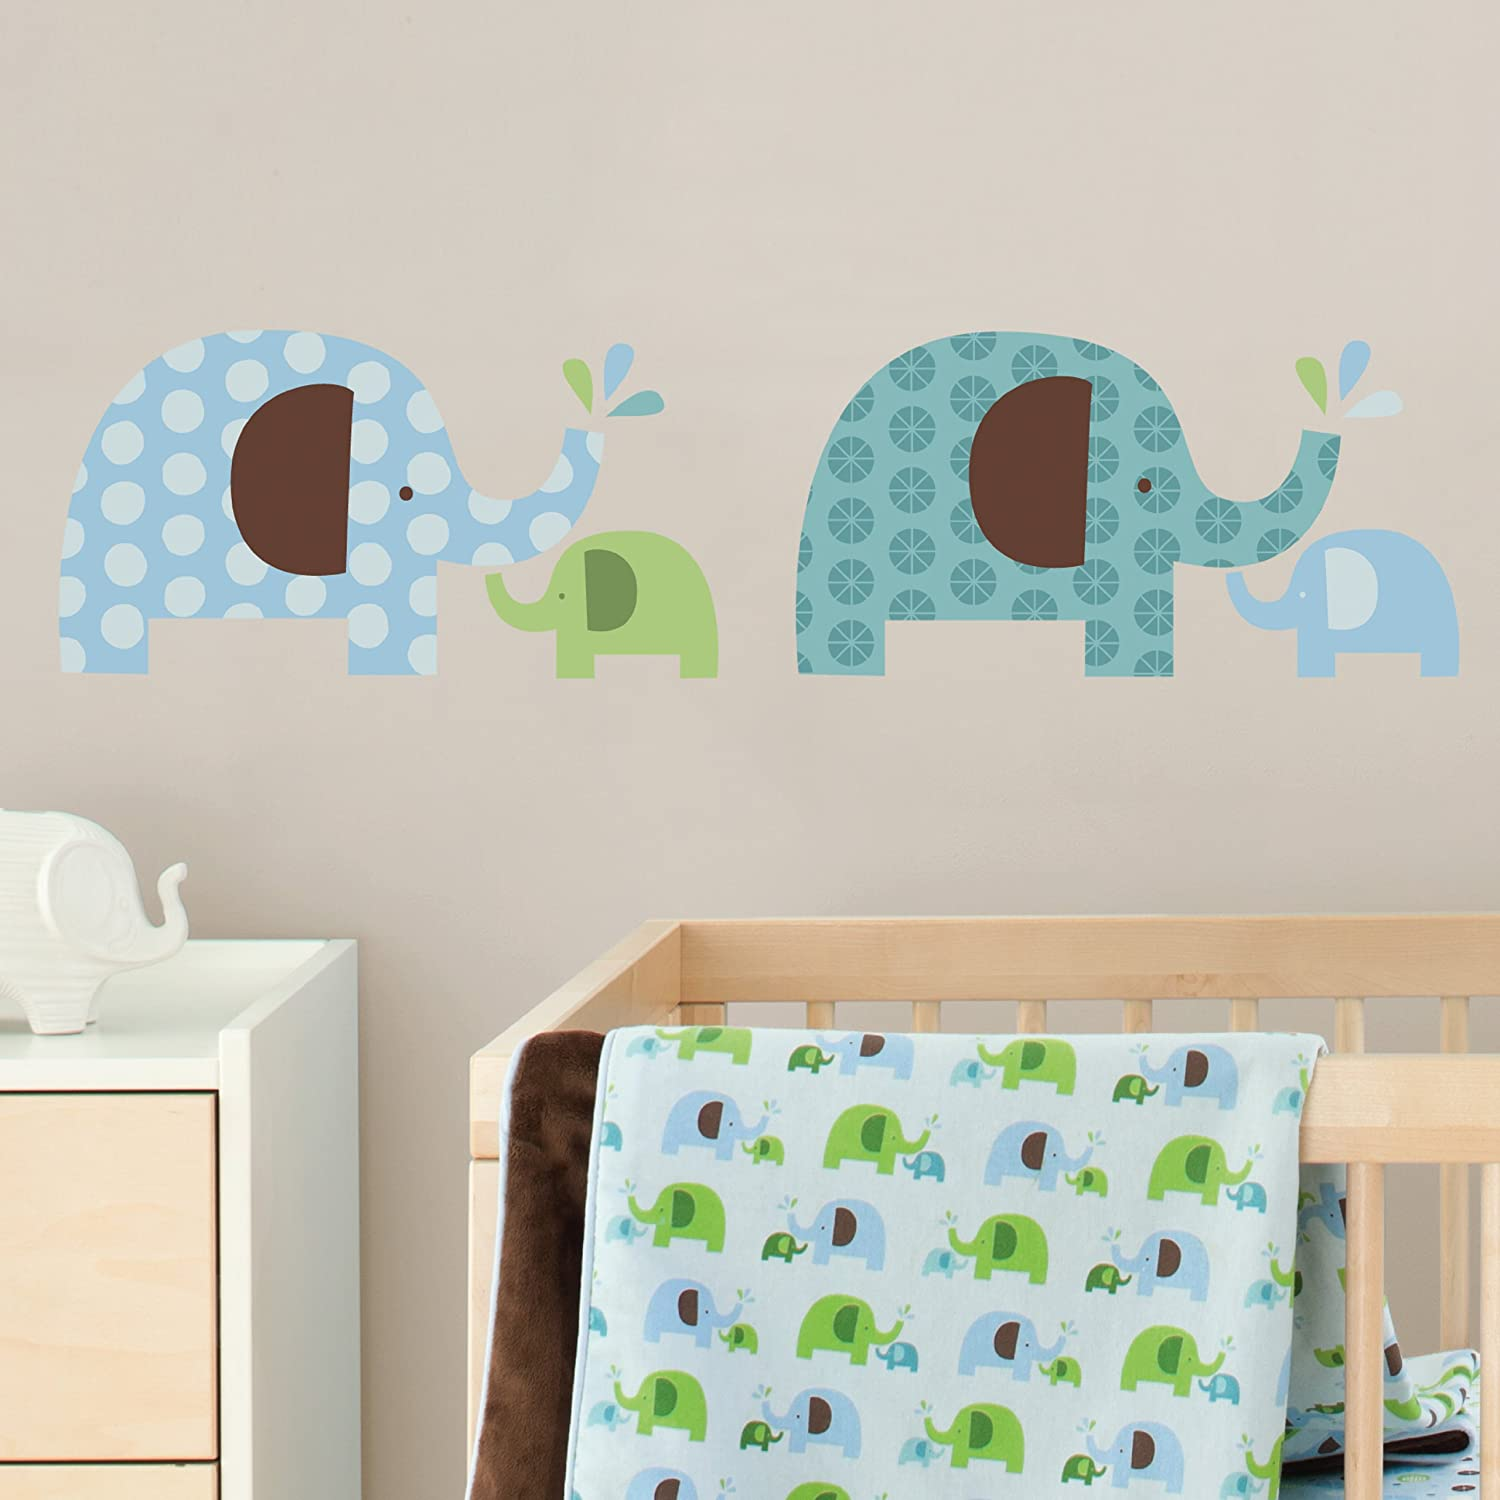 amazoncom skip hop wall decals elephant parade nursery wall stickers baby